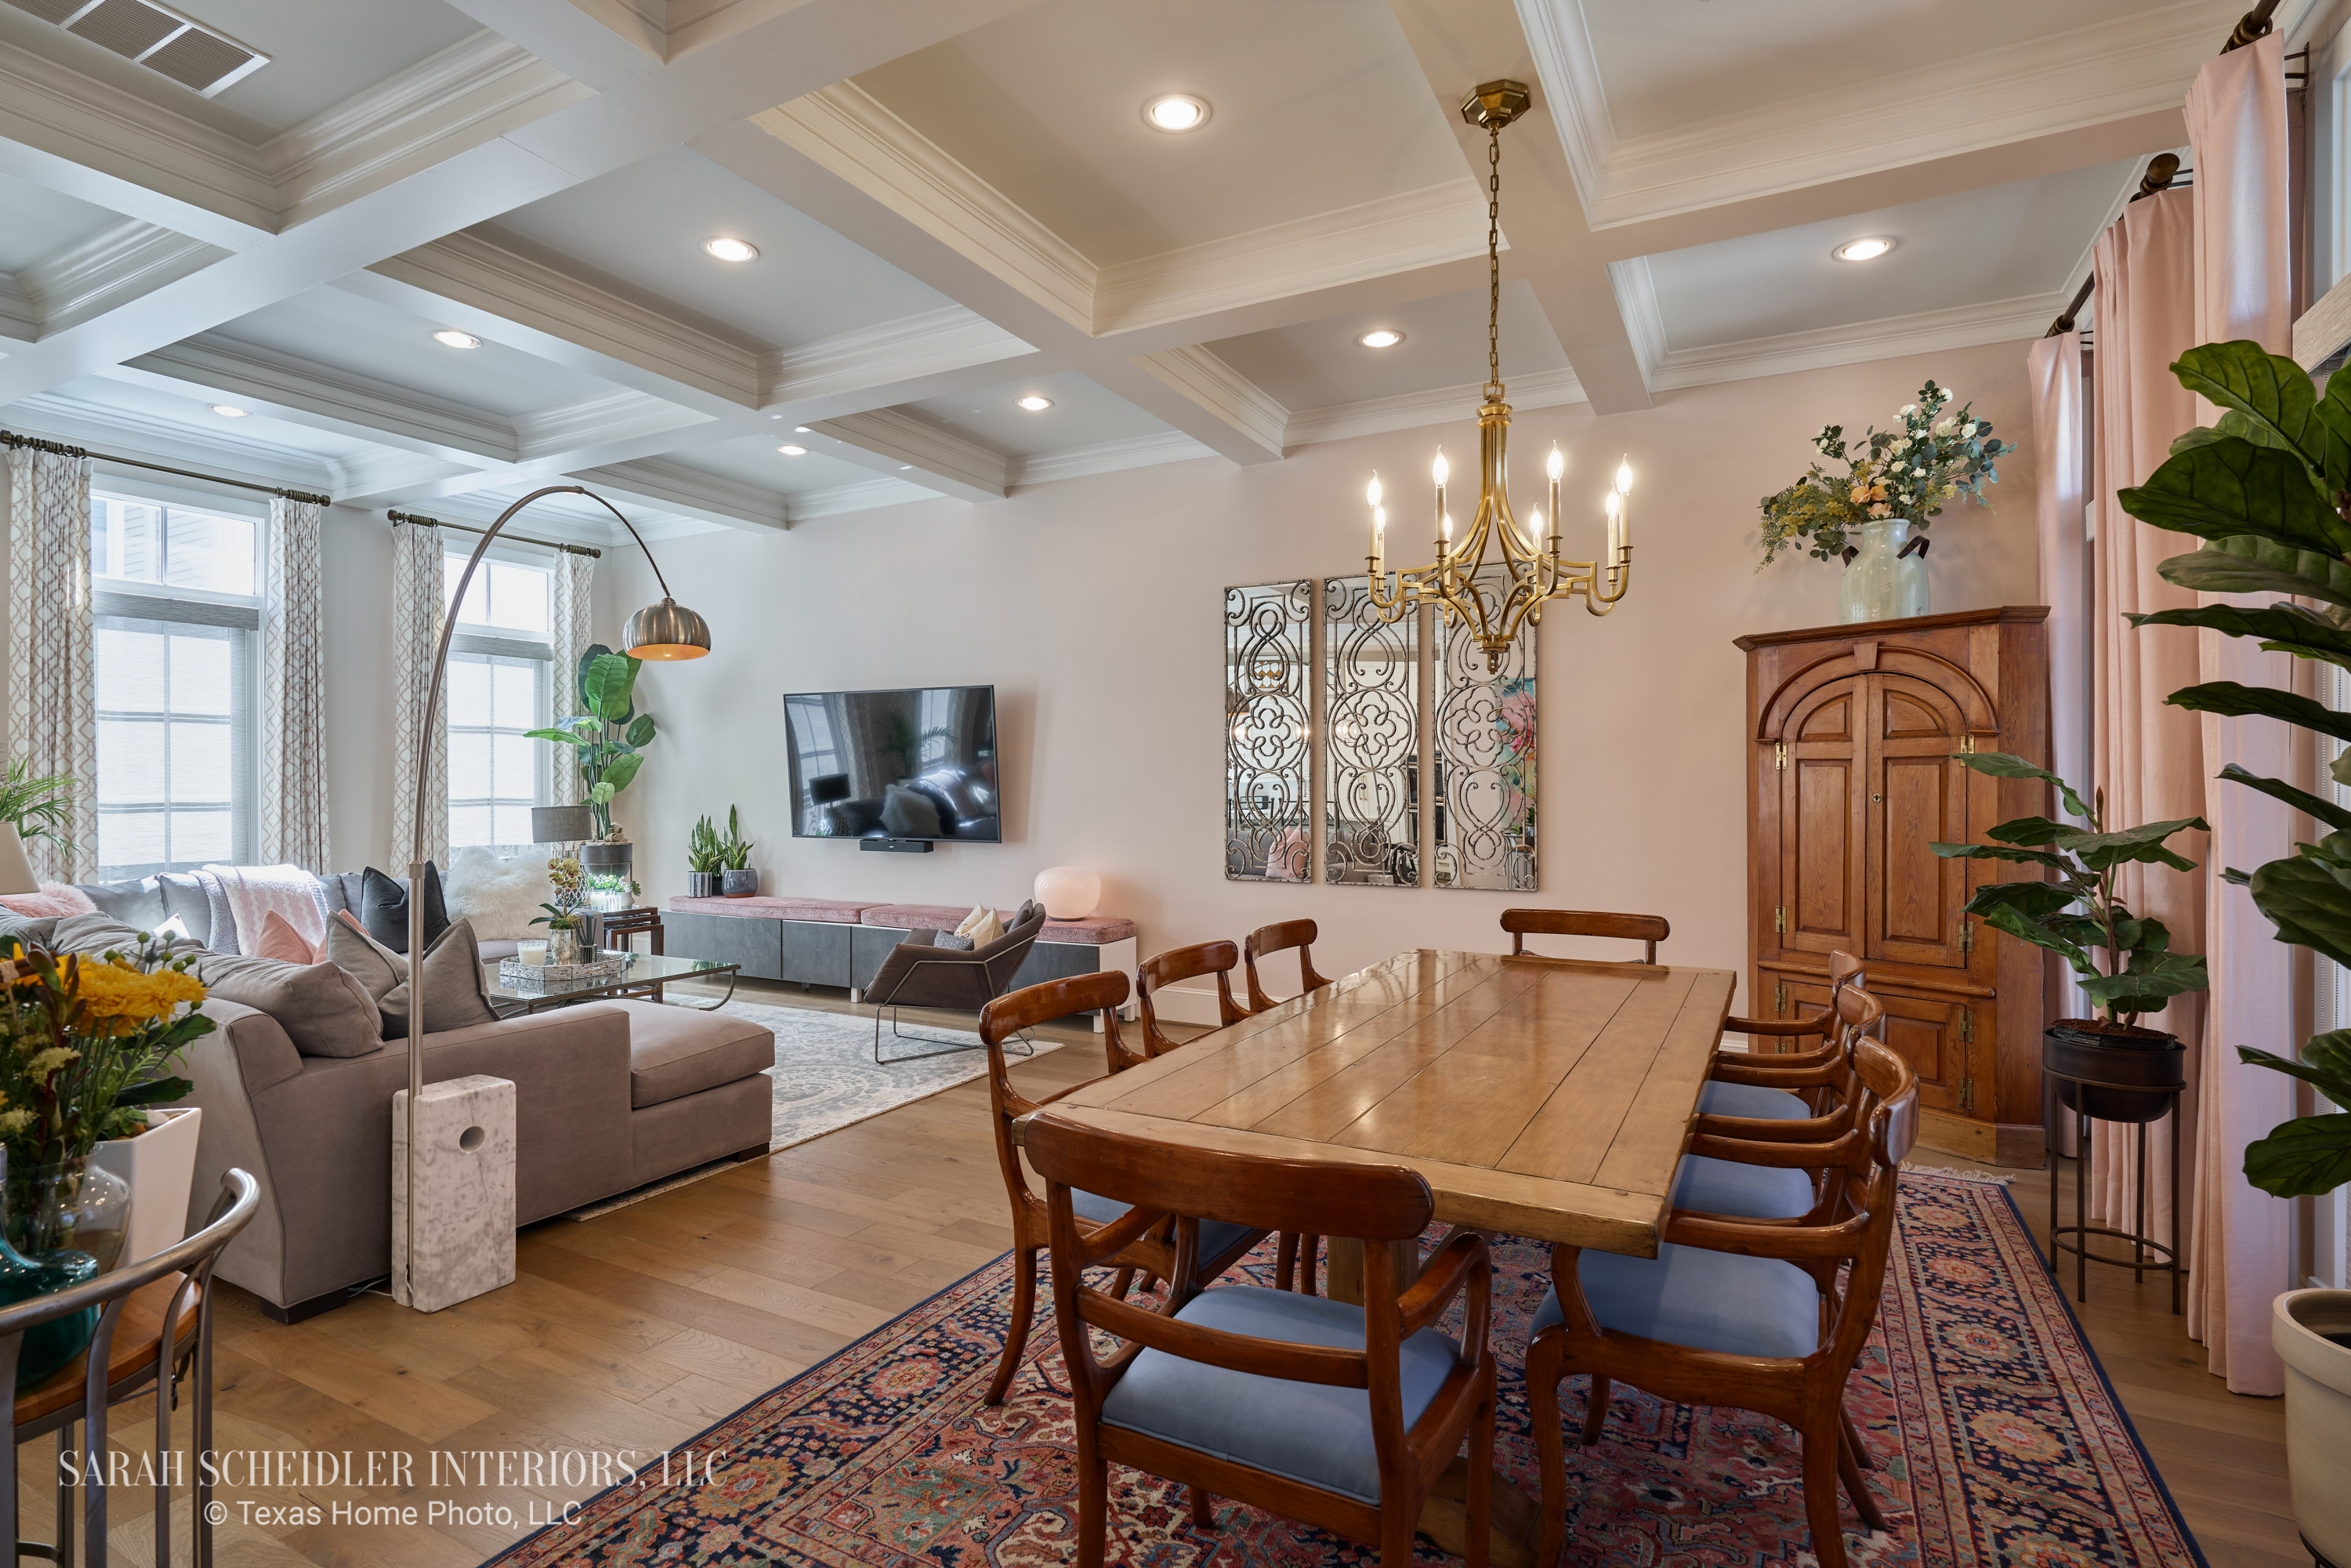 Open-Concept Dining Room and Living Room Design with Pops of Color, Decorative Wall Mirrors, Custom Drapes, and Antique Dining Set